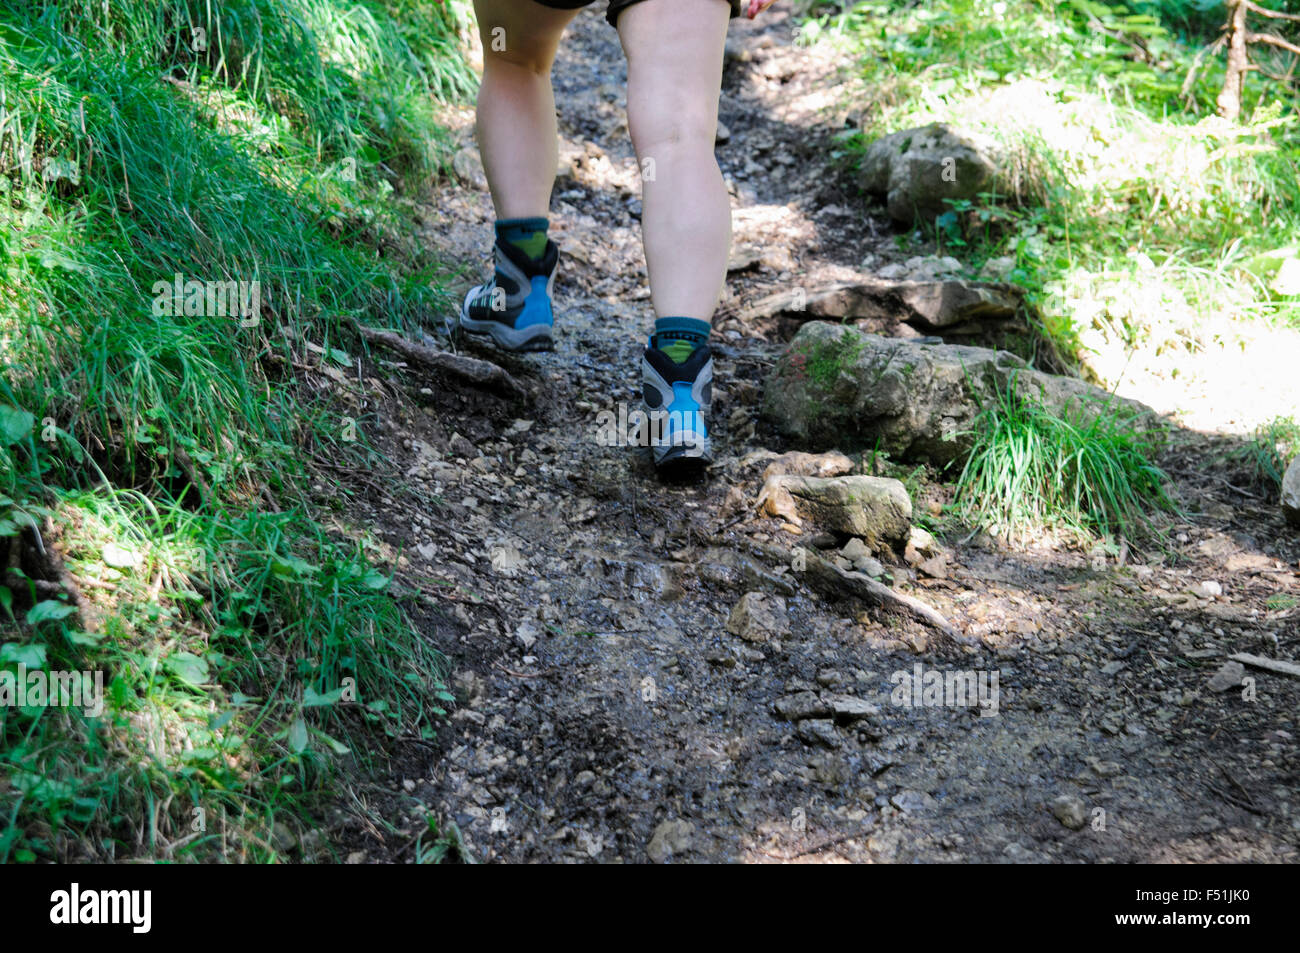 Female hiker hikes in the forest. Close up of the feet and shoes Model release available - Stock Image